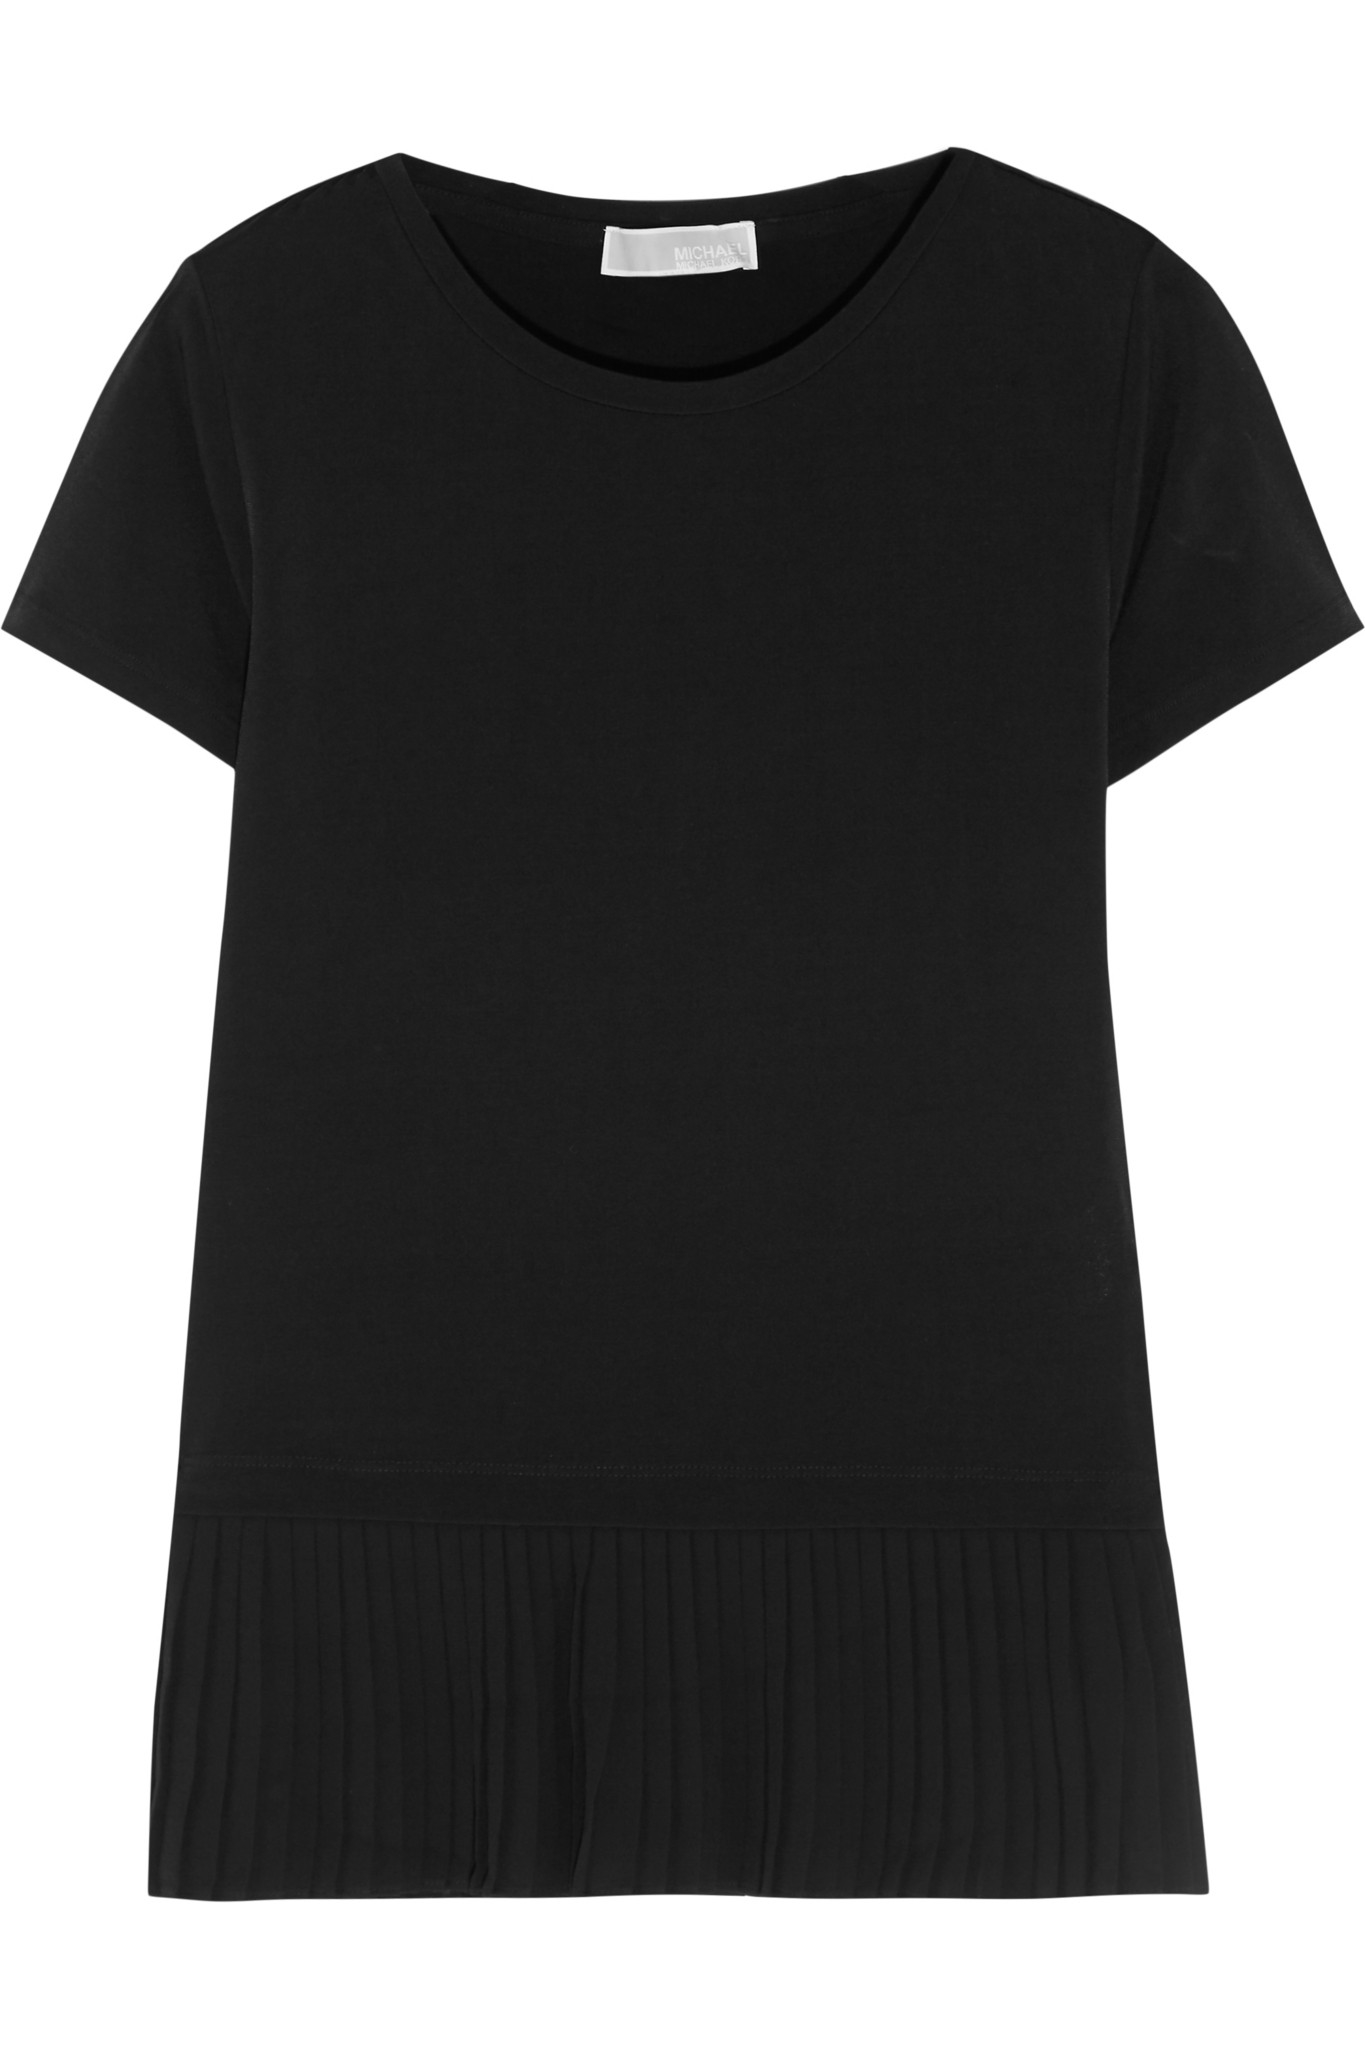 michael michael kors pleated crepe trimmed stretch jersey t shirt black in black lyst. Black Bedroom Furniture Sets. Home Design Ideas